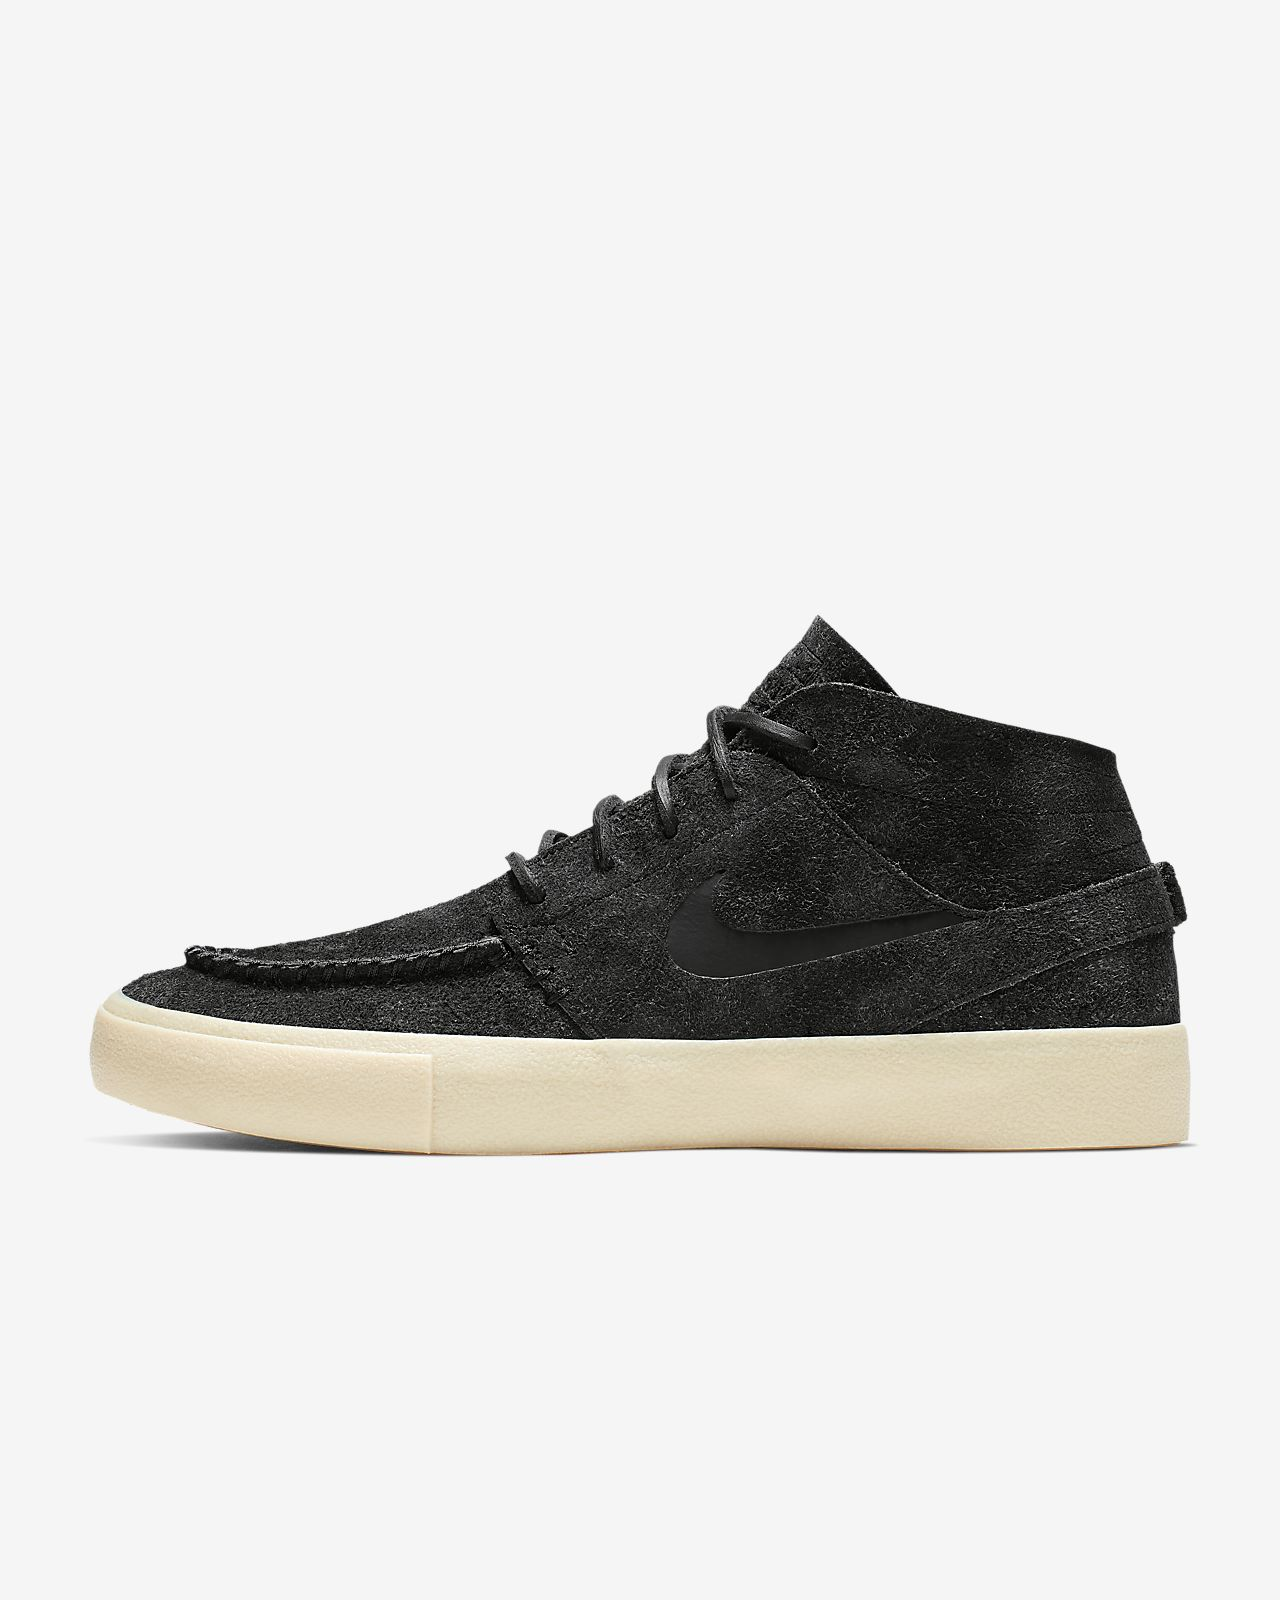 huge discount 2161c 875f2 ... Chaussure de skateboard Nike SB Zoom Janoski Mid Crafted pour Homme